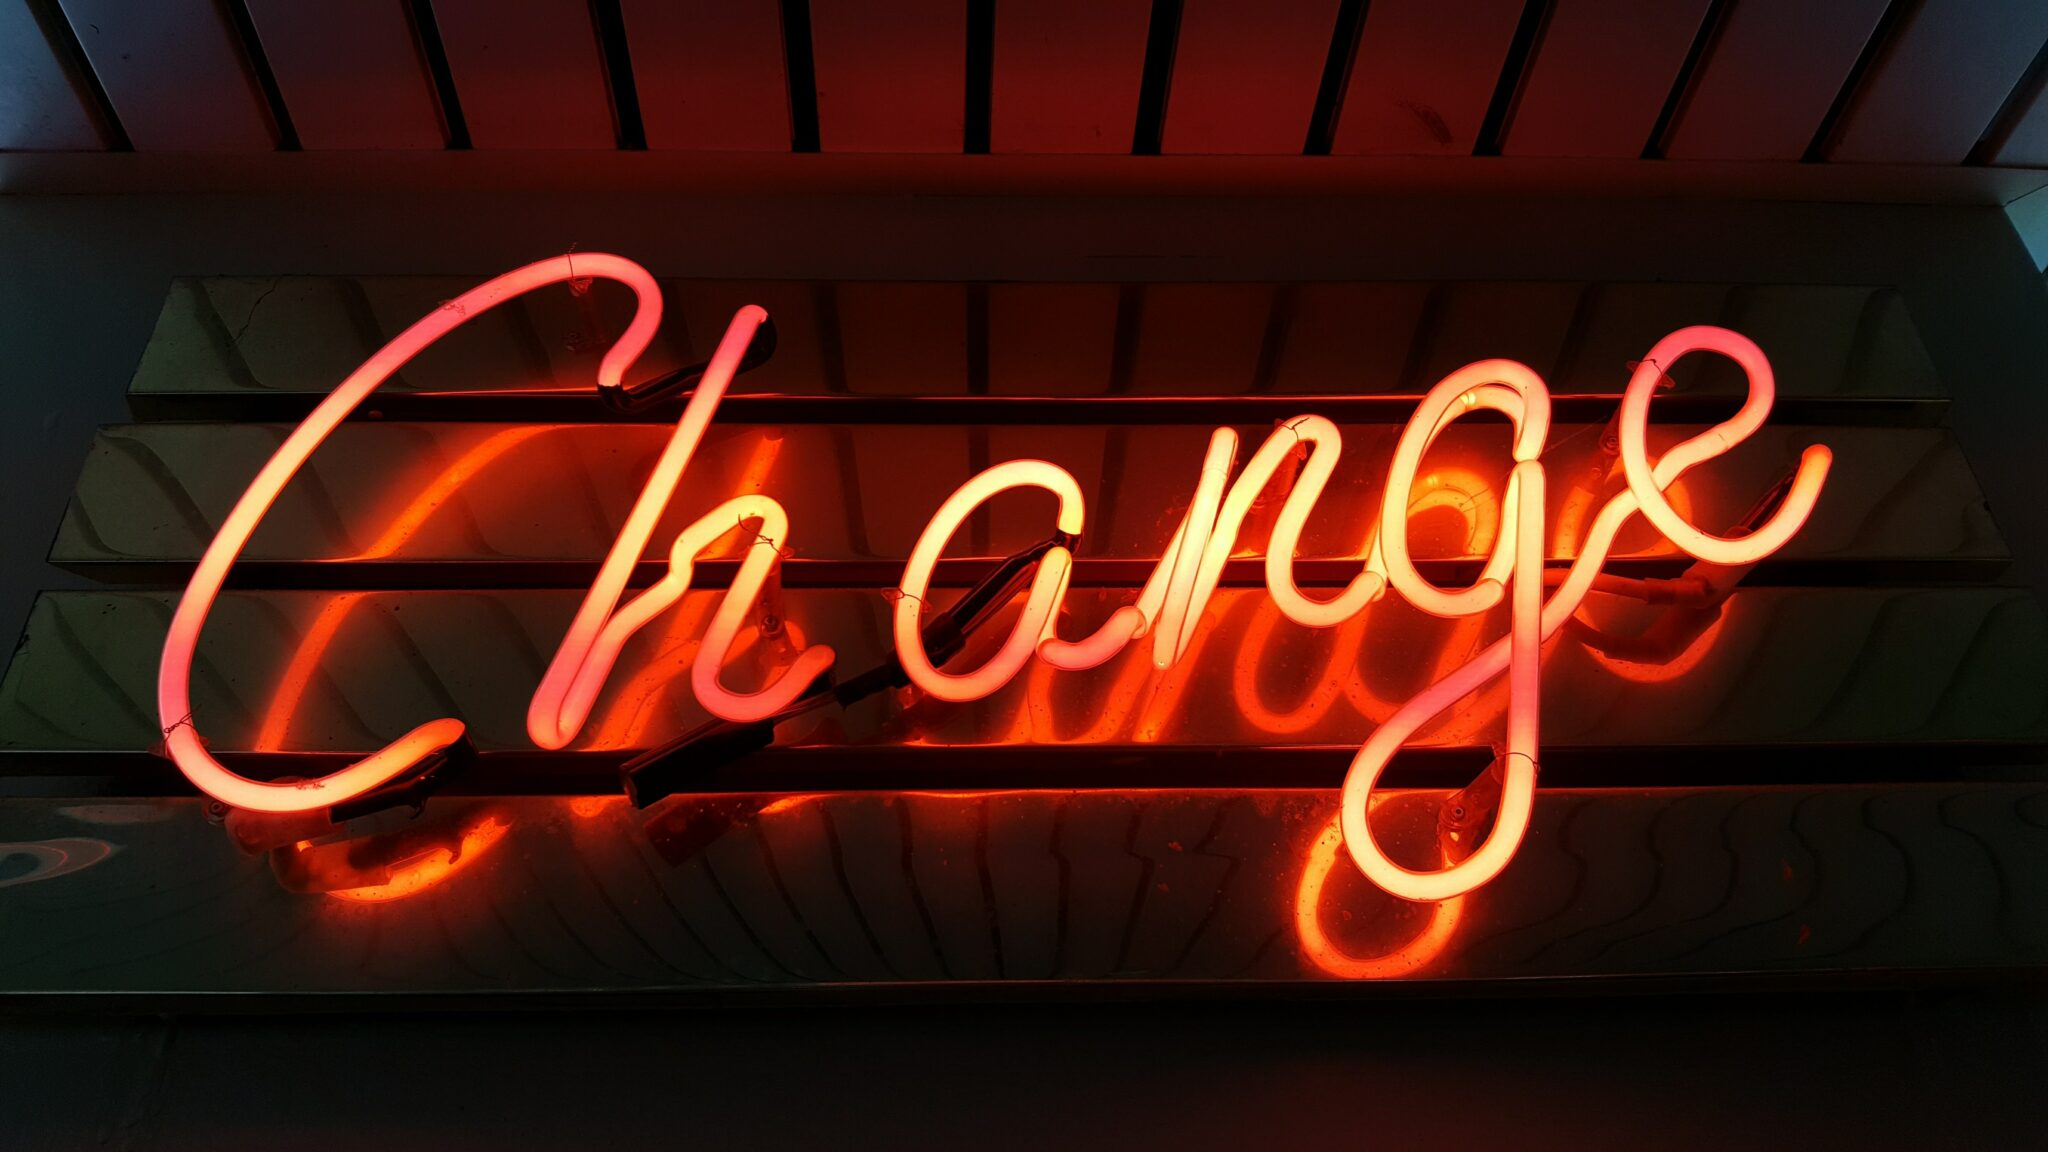 Change-neon-light-signage